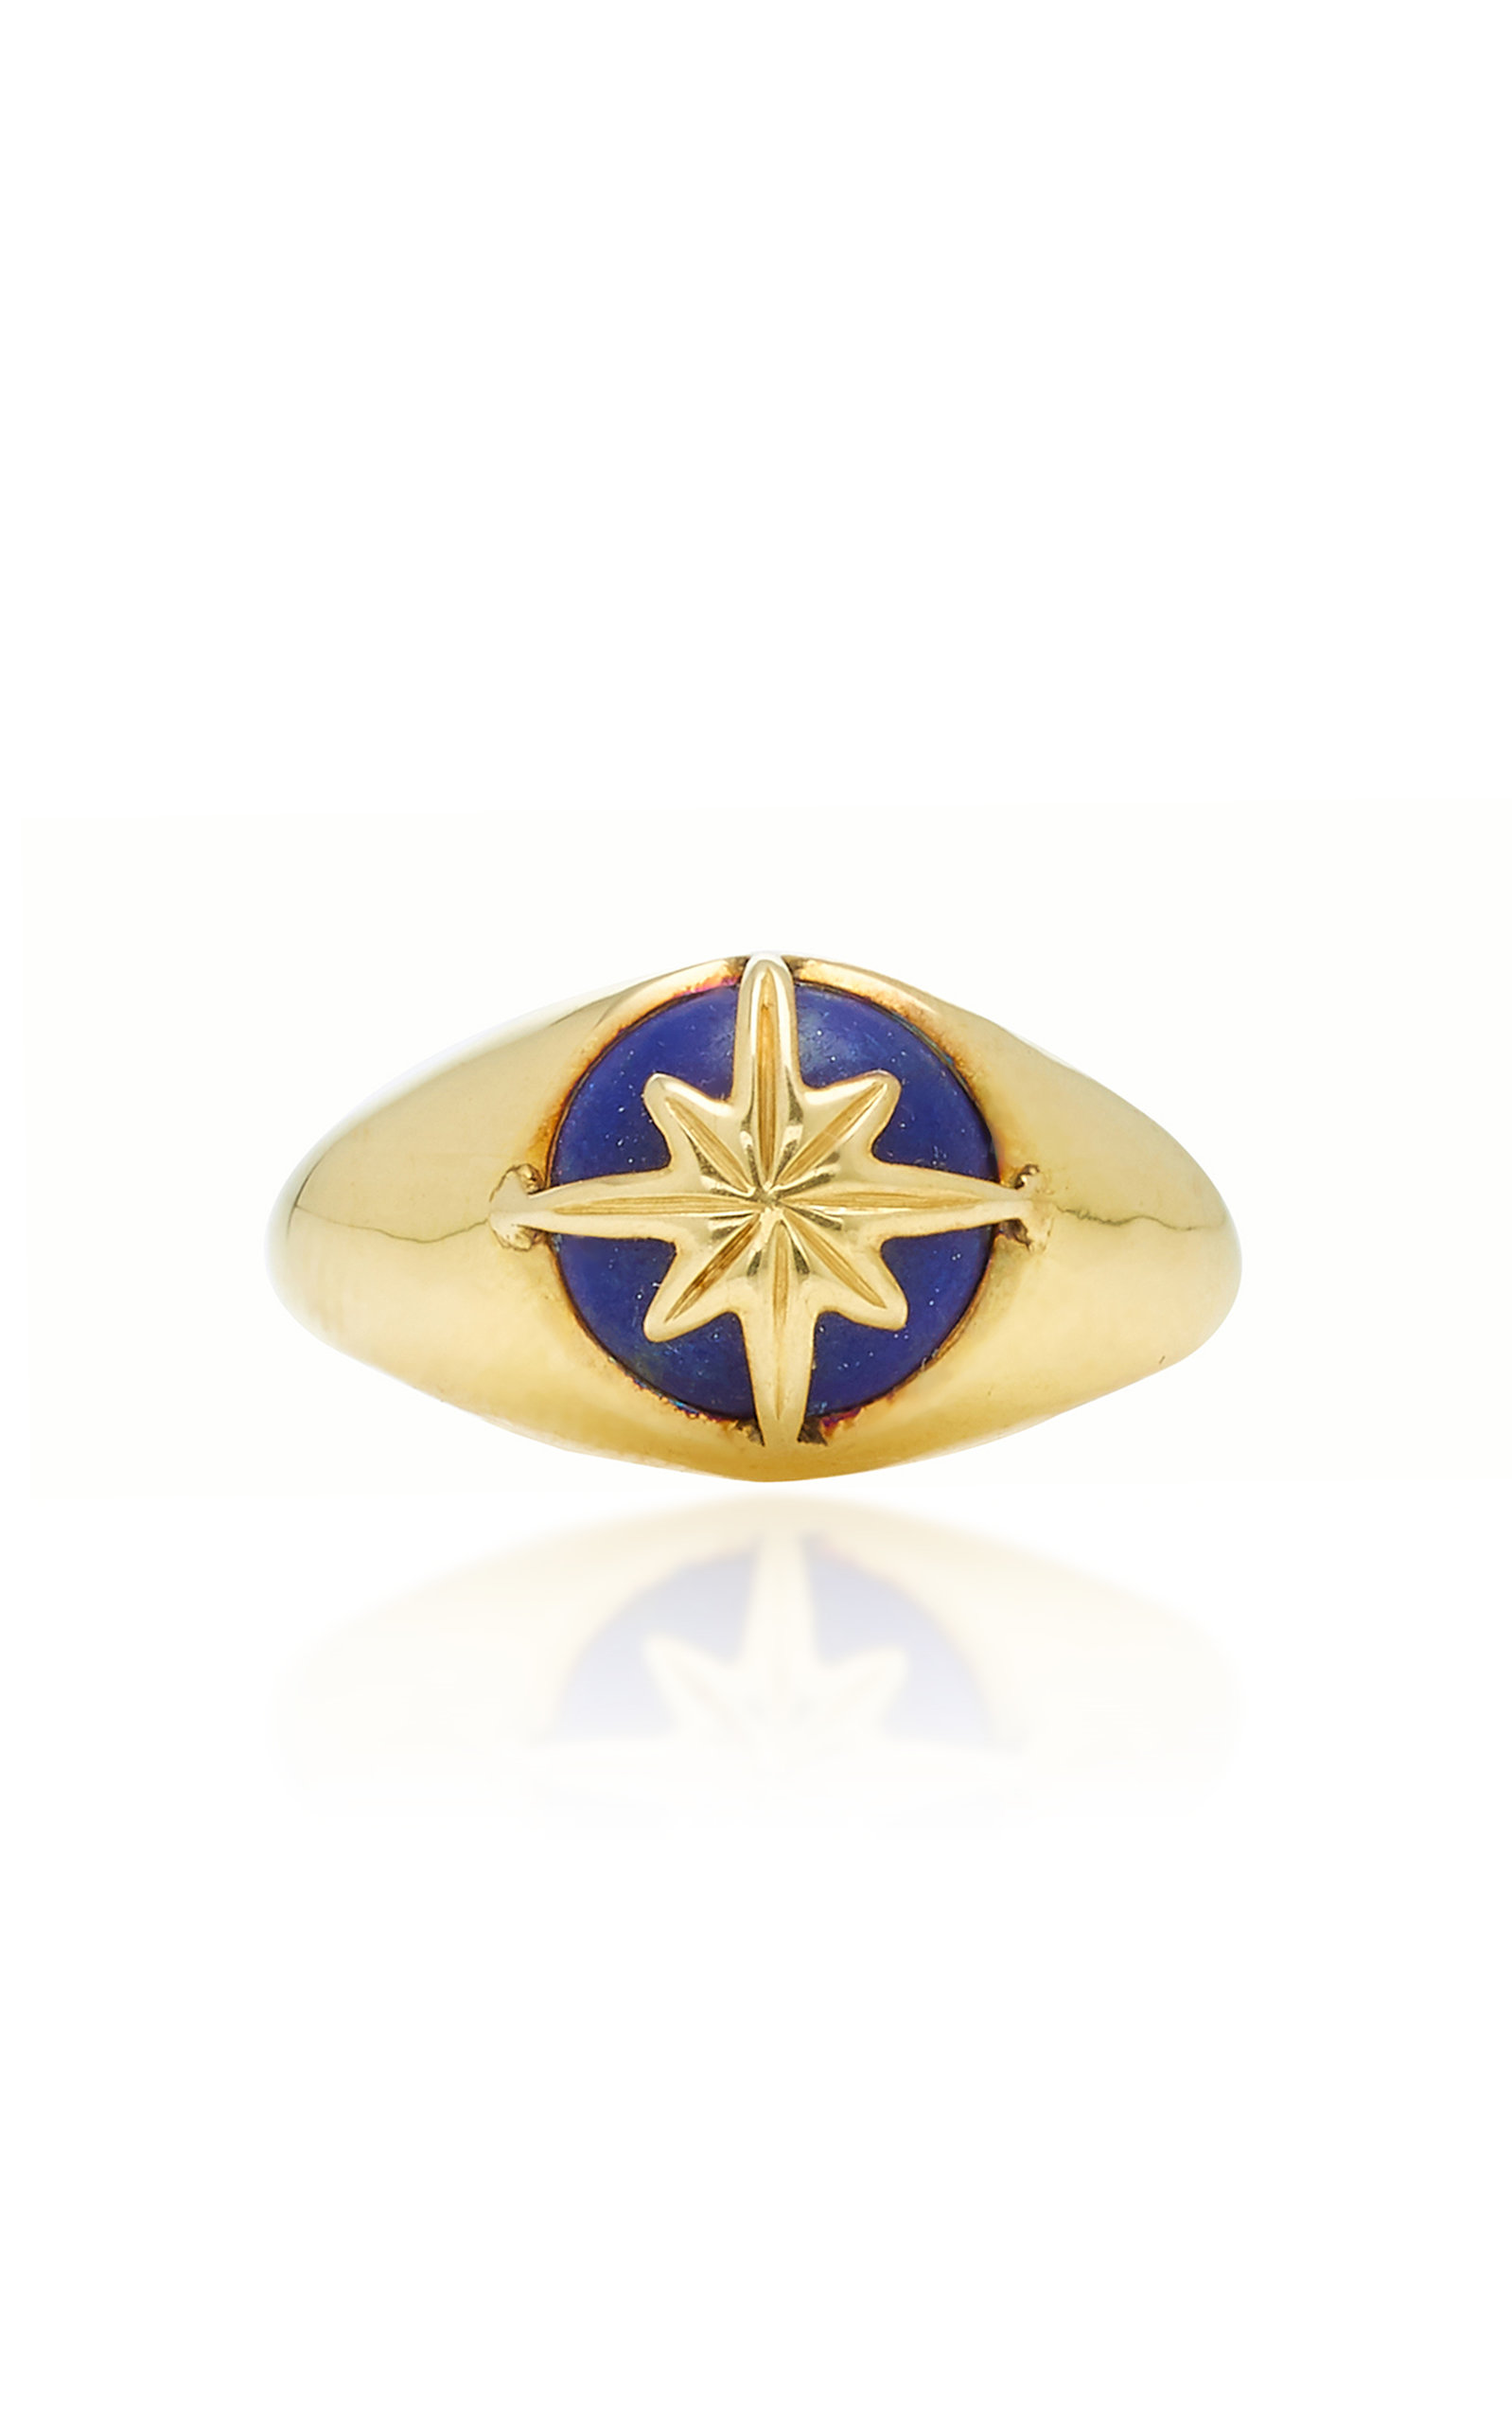 STAR LAPIS GOLD-PLATED STERLING SILVER PINKY RING.